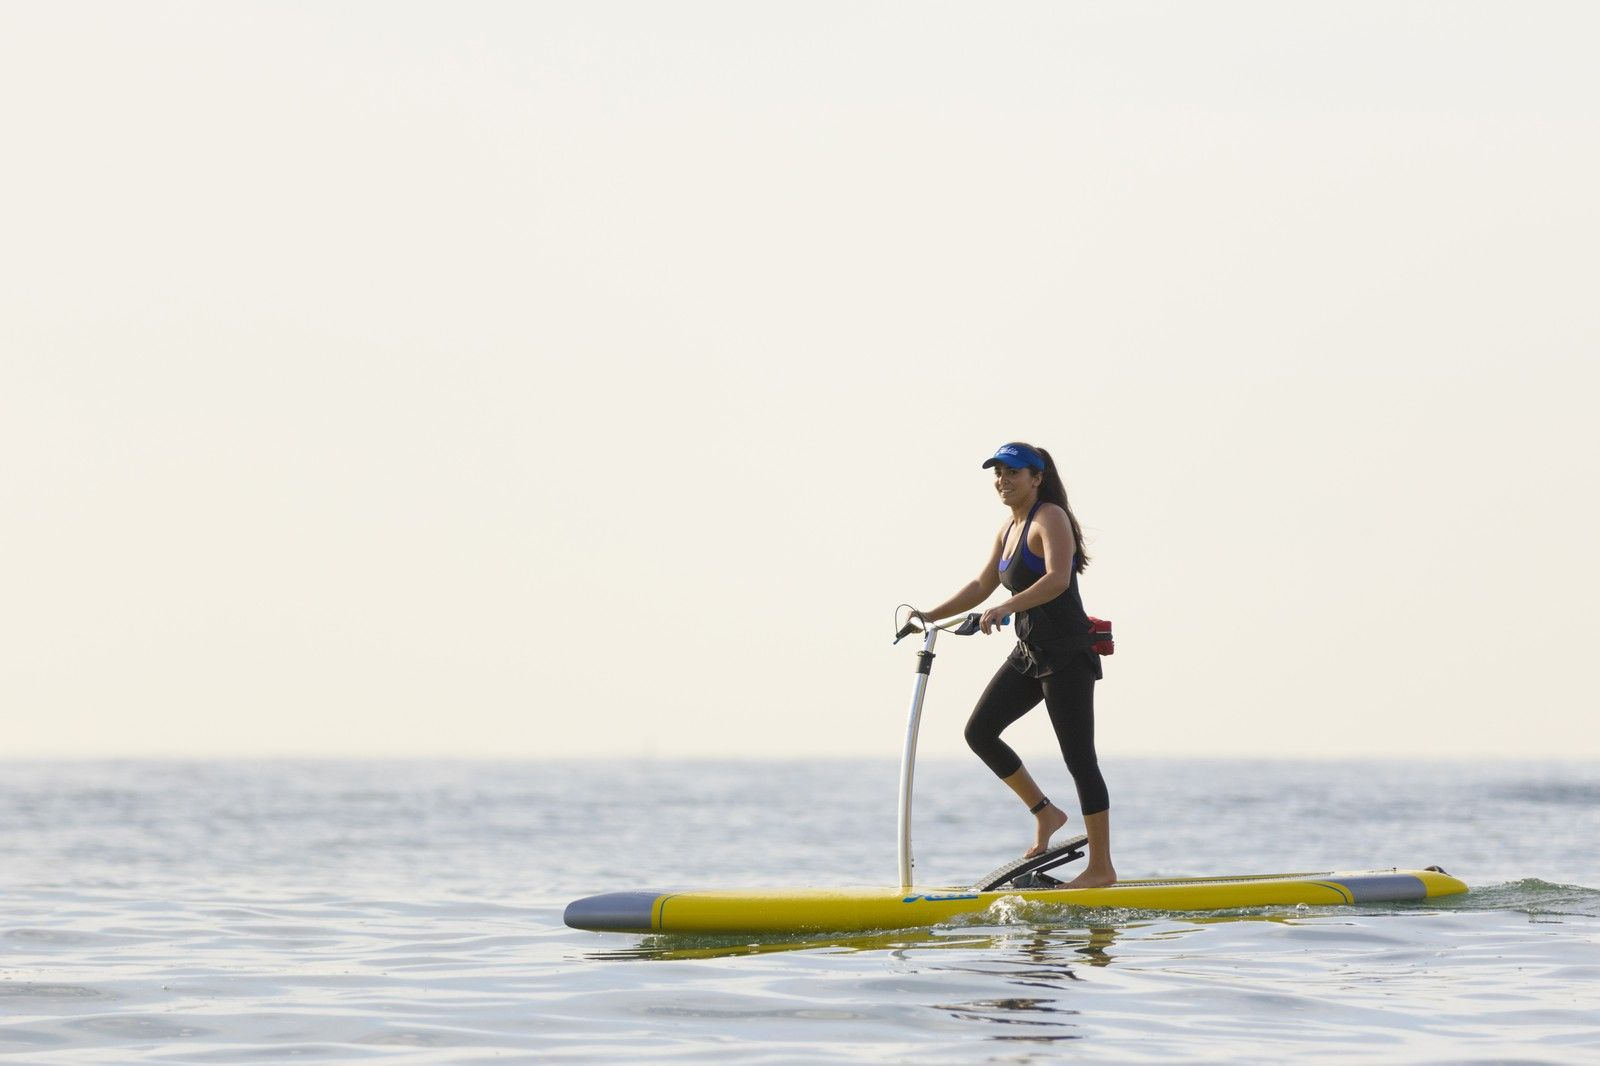 Step On And Go Introducing The Hobie Mirage Eclipse Avec Images Stand Up Paddle Kayak Velo Aquatique